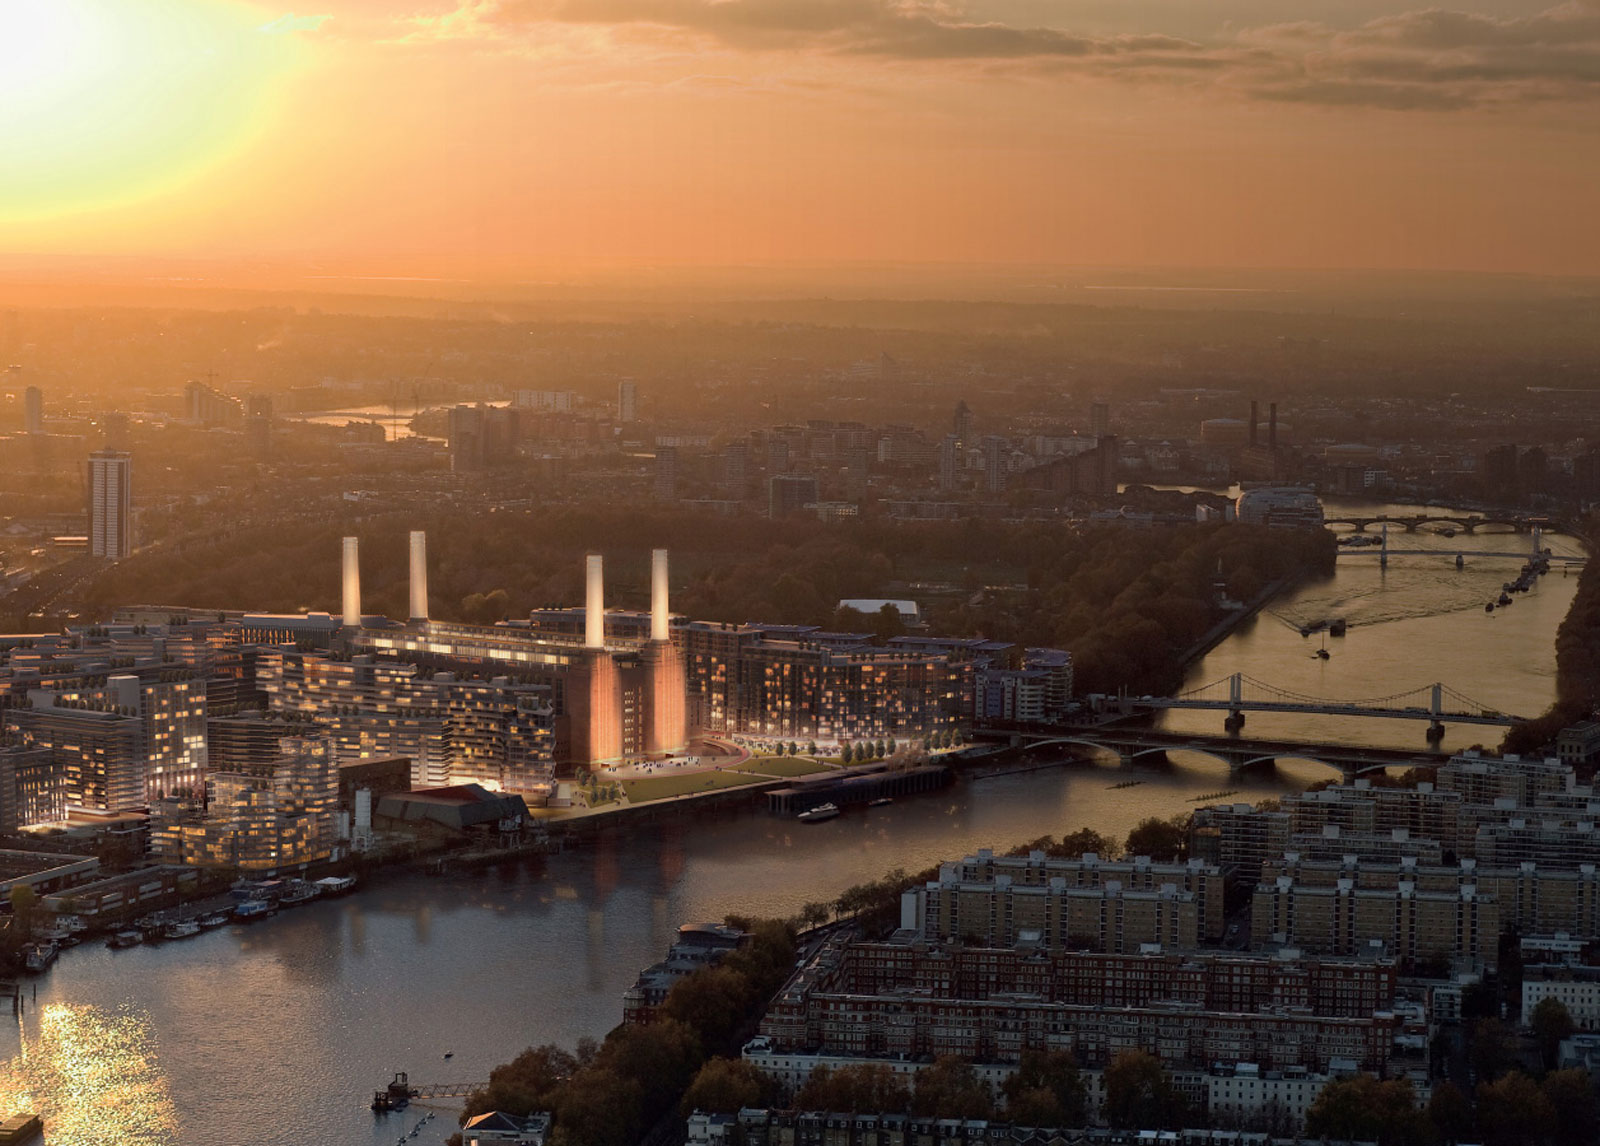 Luxury Homes On Sale At London's Battersea Power Station